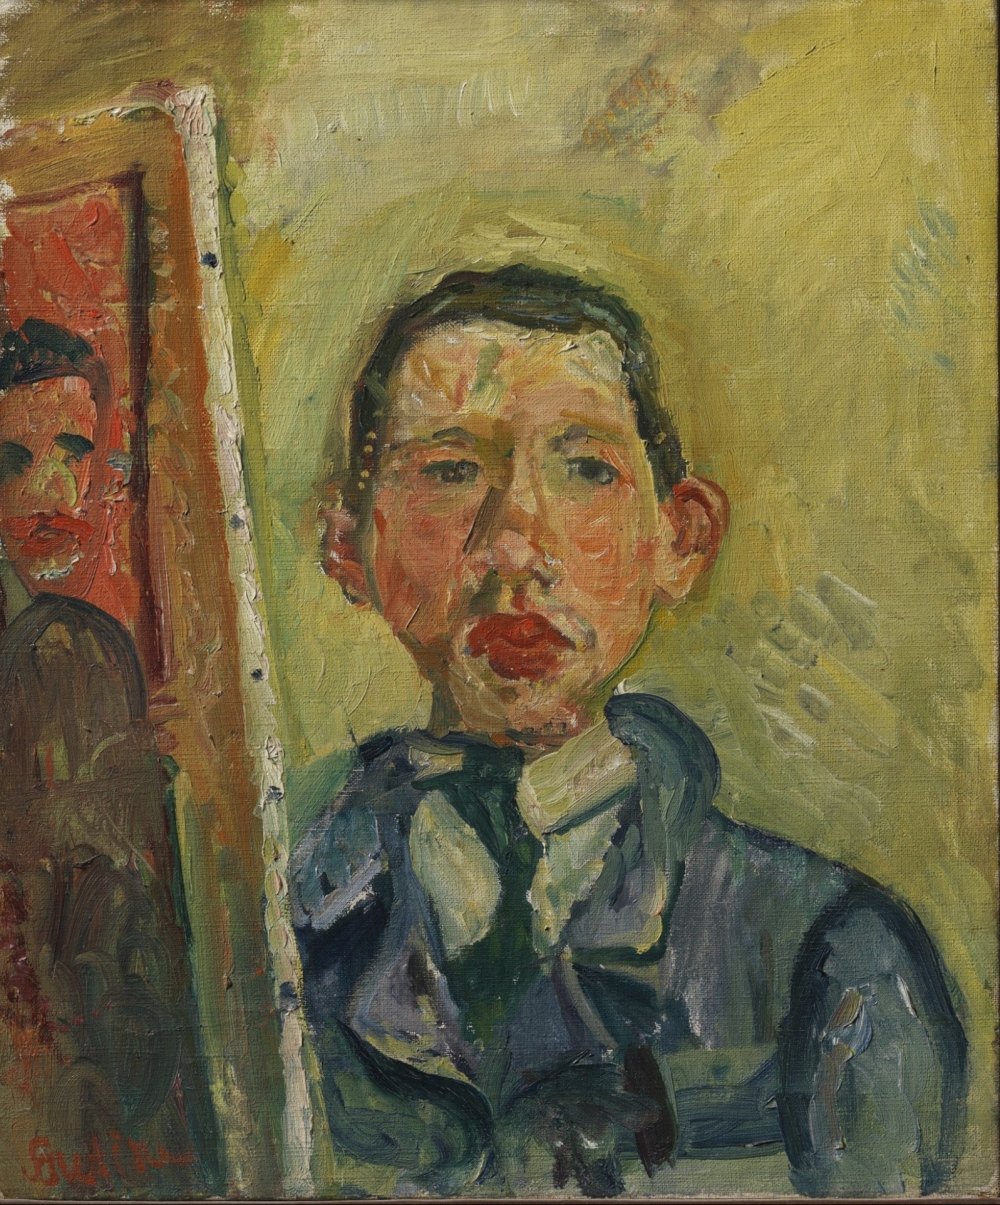 Soutine,_Self_Portrait jpg (JPEG Image, 1668 × 2000 pixels) - Scaled (48%)